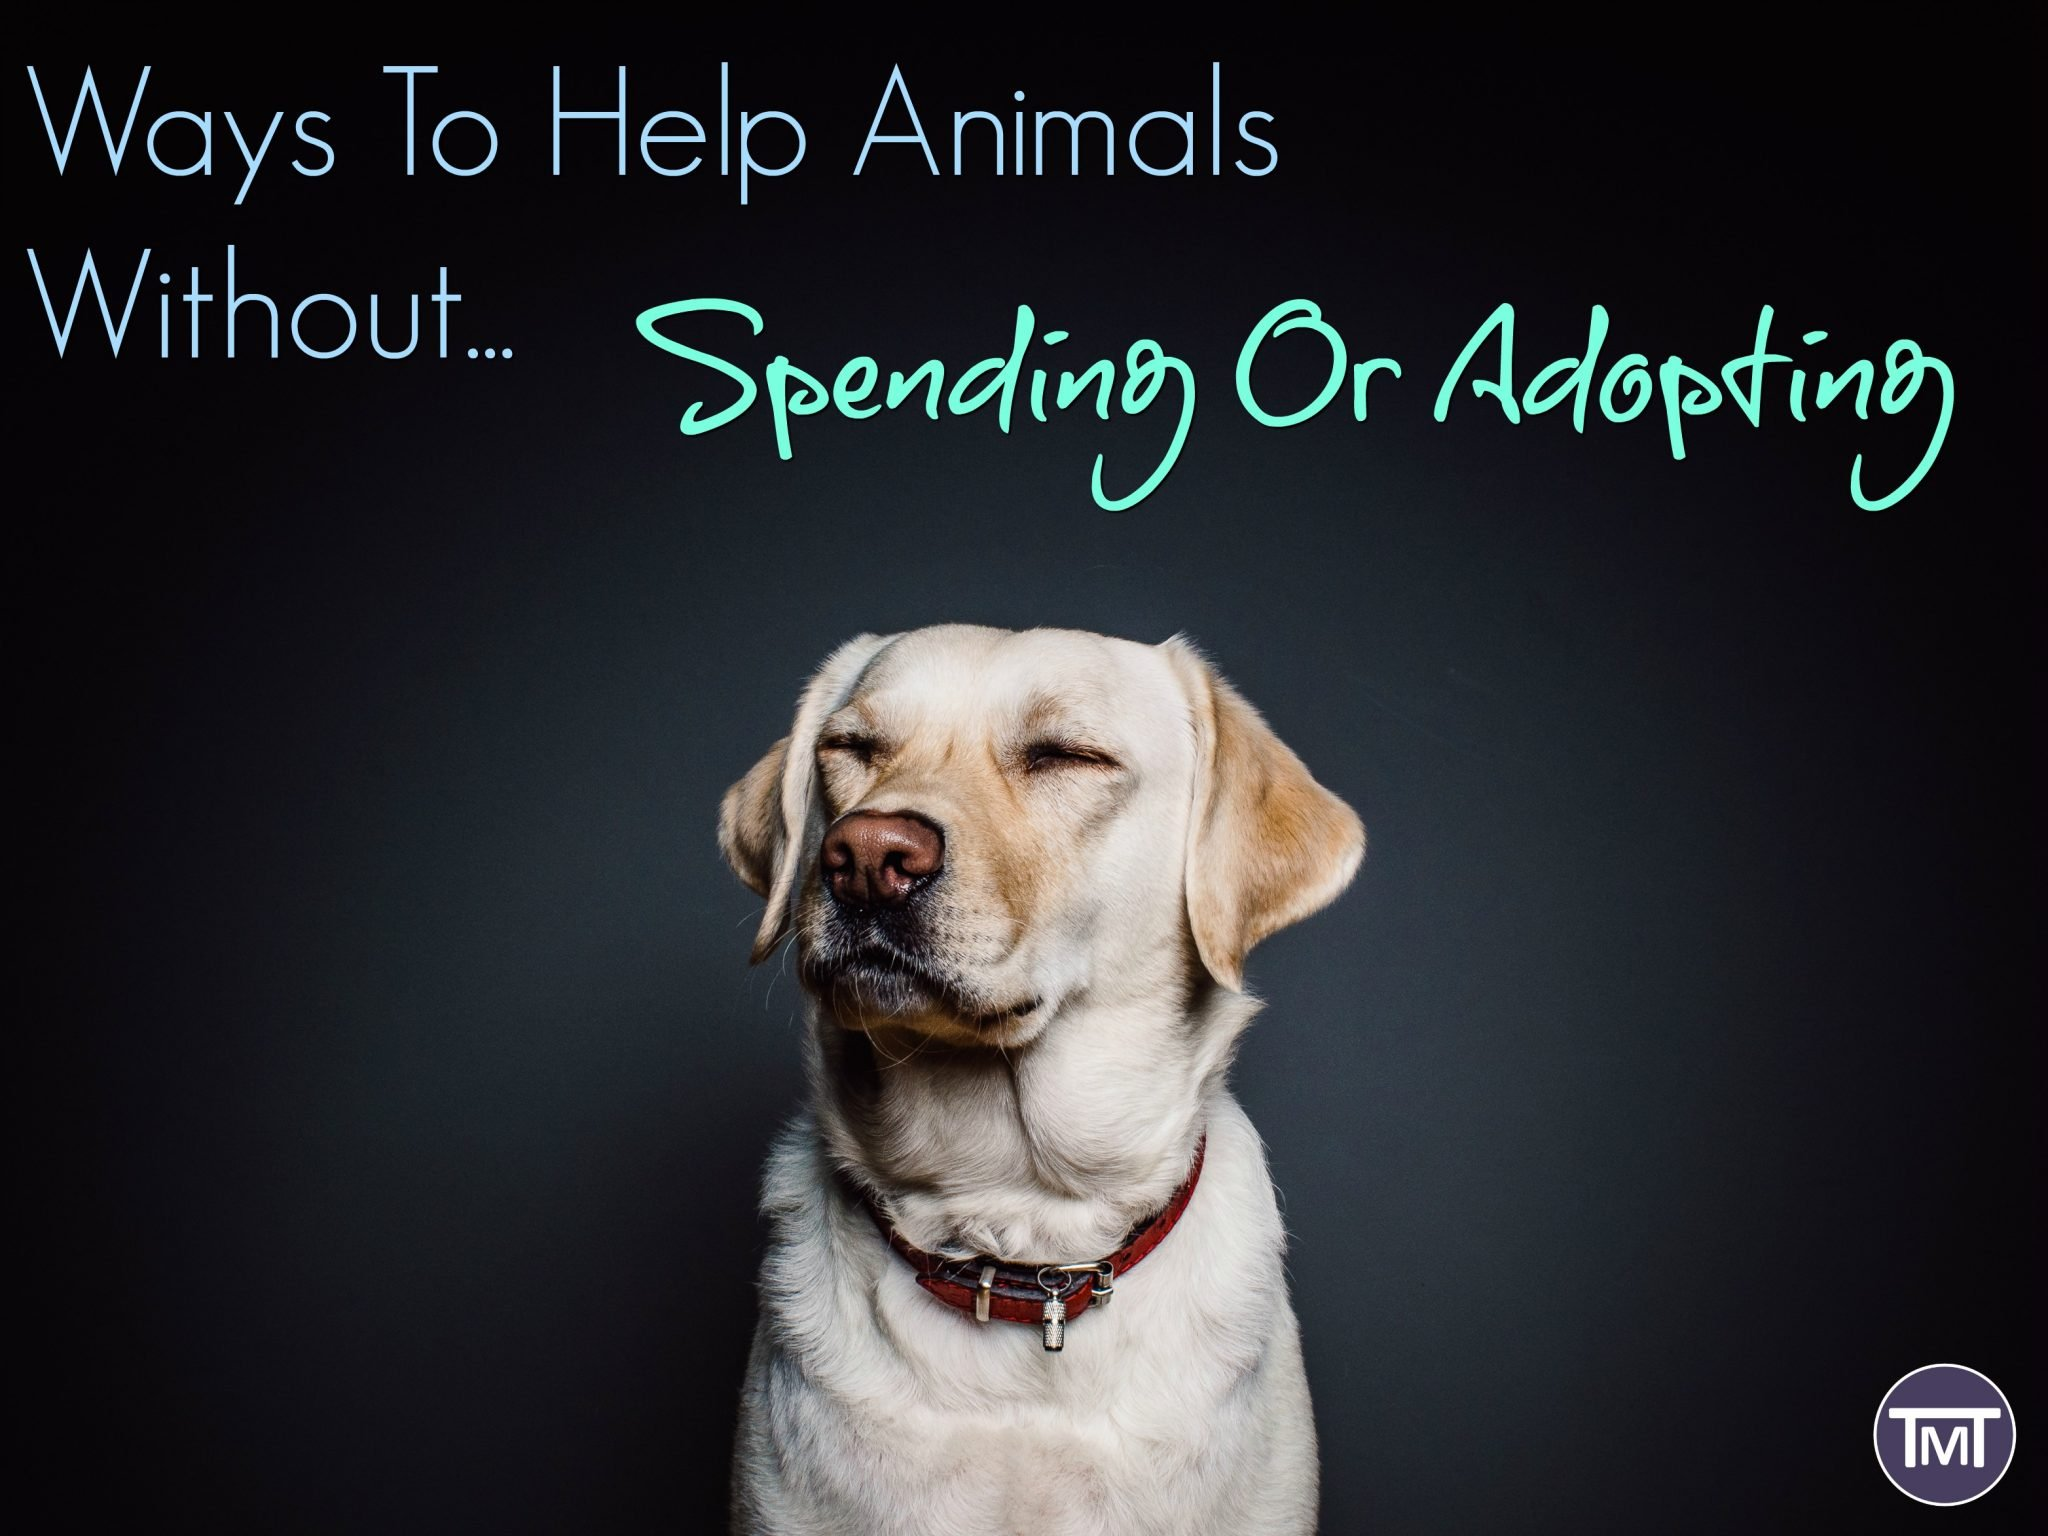 Ways To Help Animals Without Spending Or Adopting